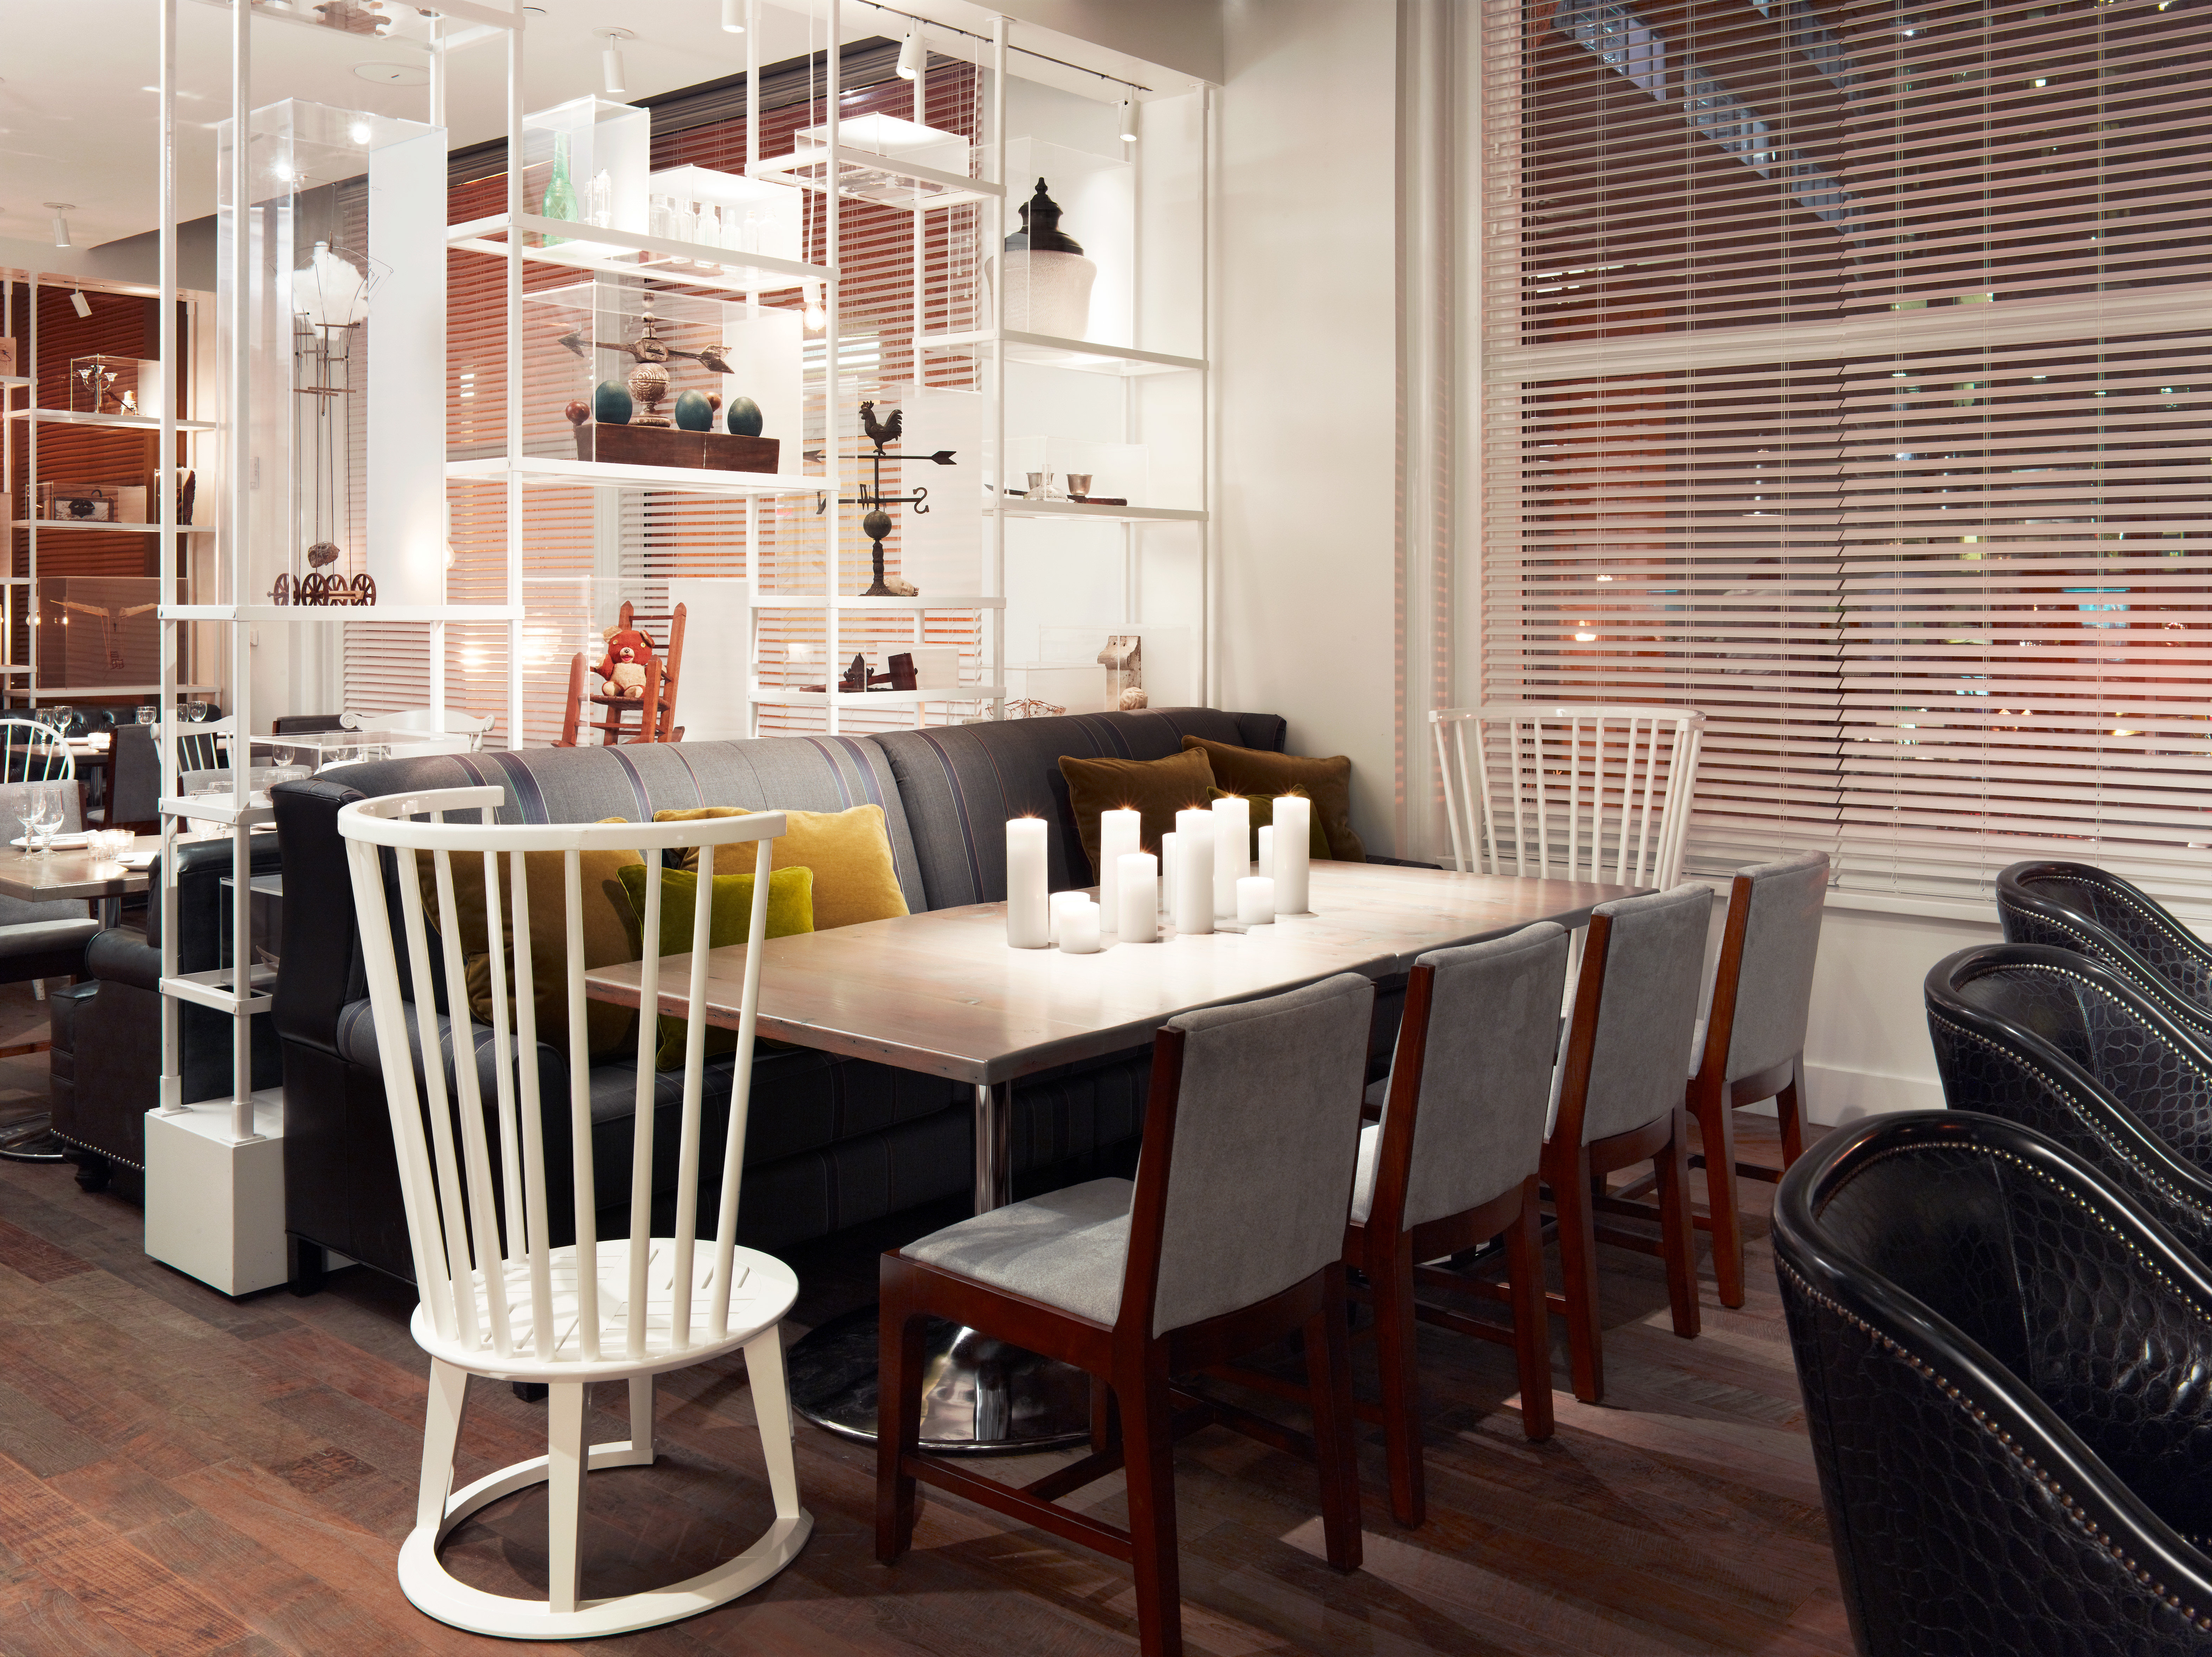 City Dining Drink Eat Modern chair property home restaurant living room flooring Kitchen dining table